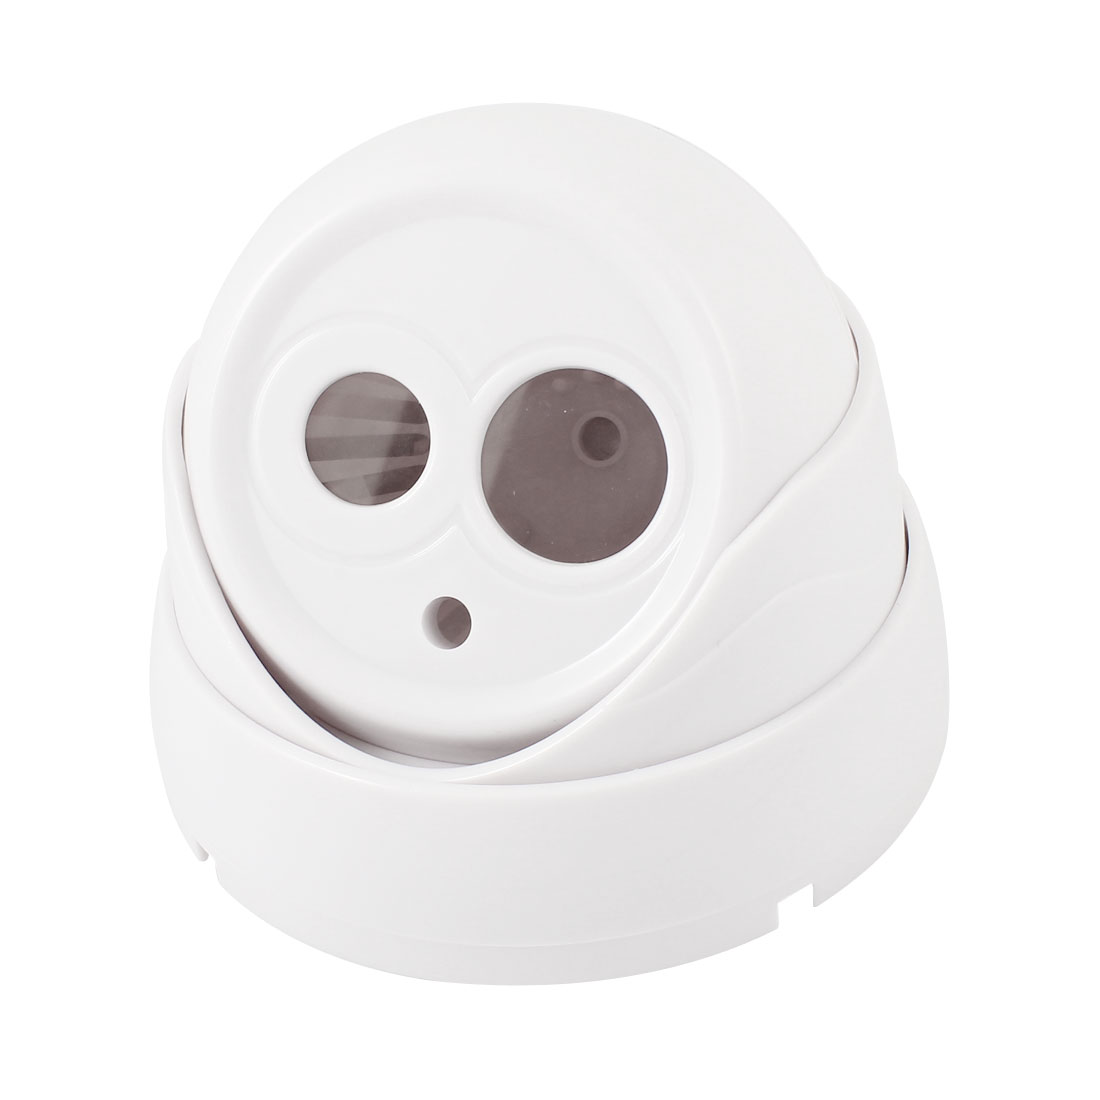 Indoor Surveillance White Plastic CCTV Dome Camera Housing Case